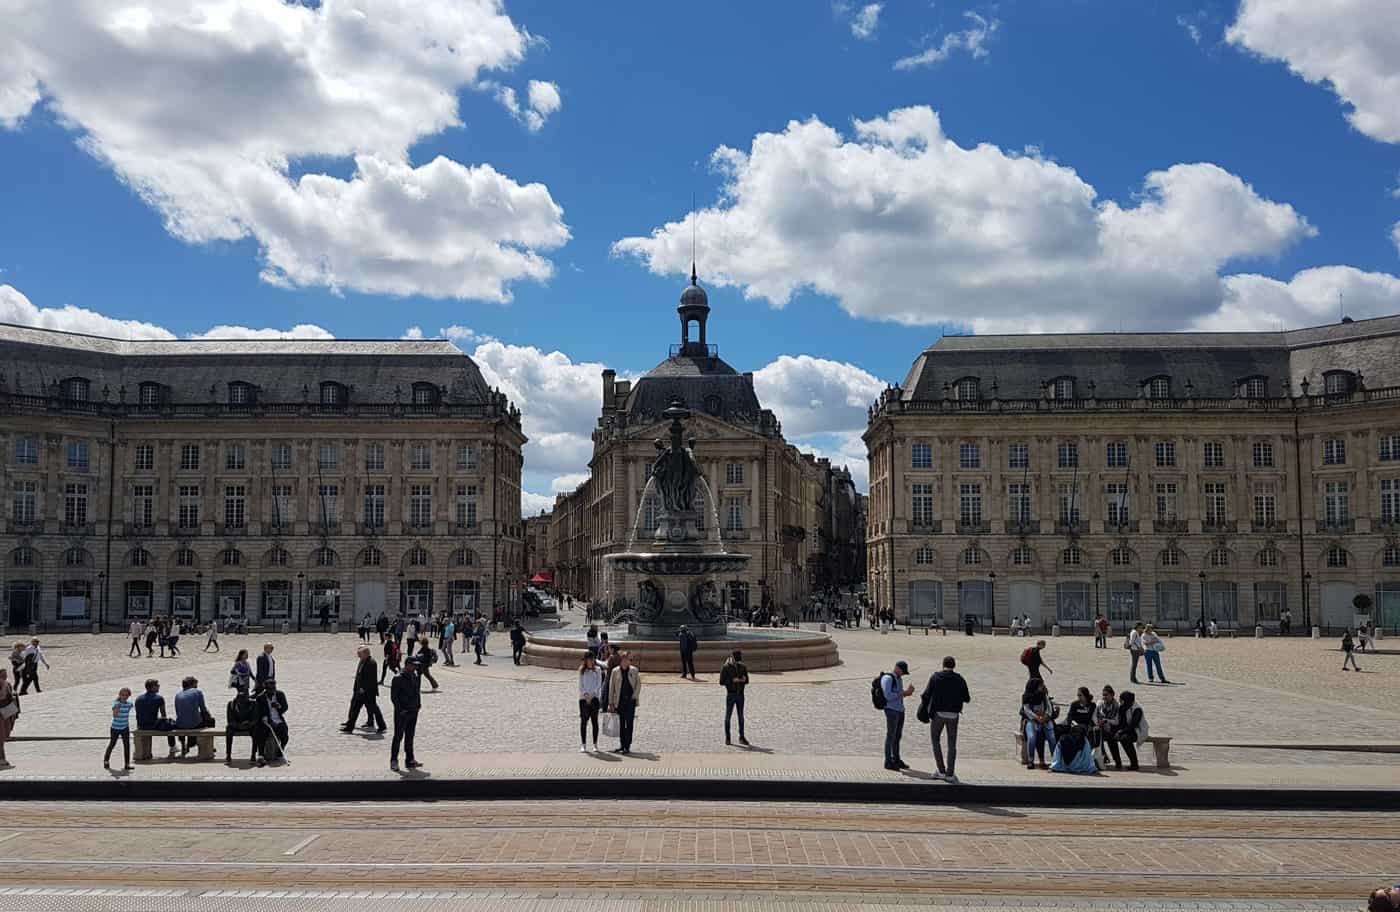 day trips from paris by train - Bordeaux is only a couple of hours away from Paris and therefore makes an excellent day trip from Paris